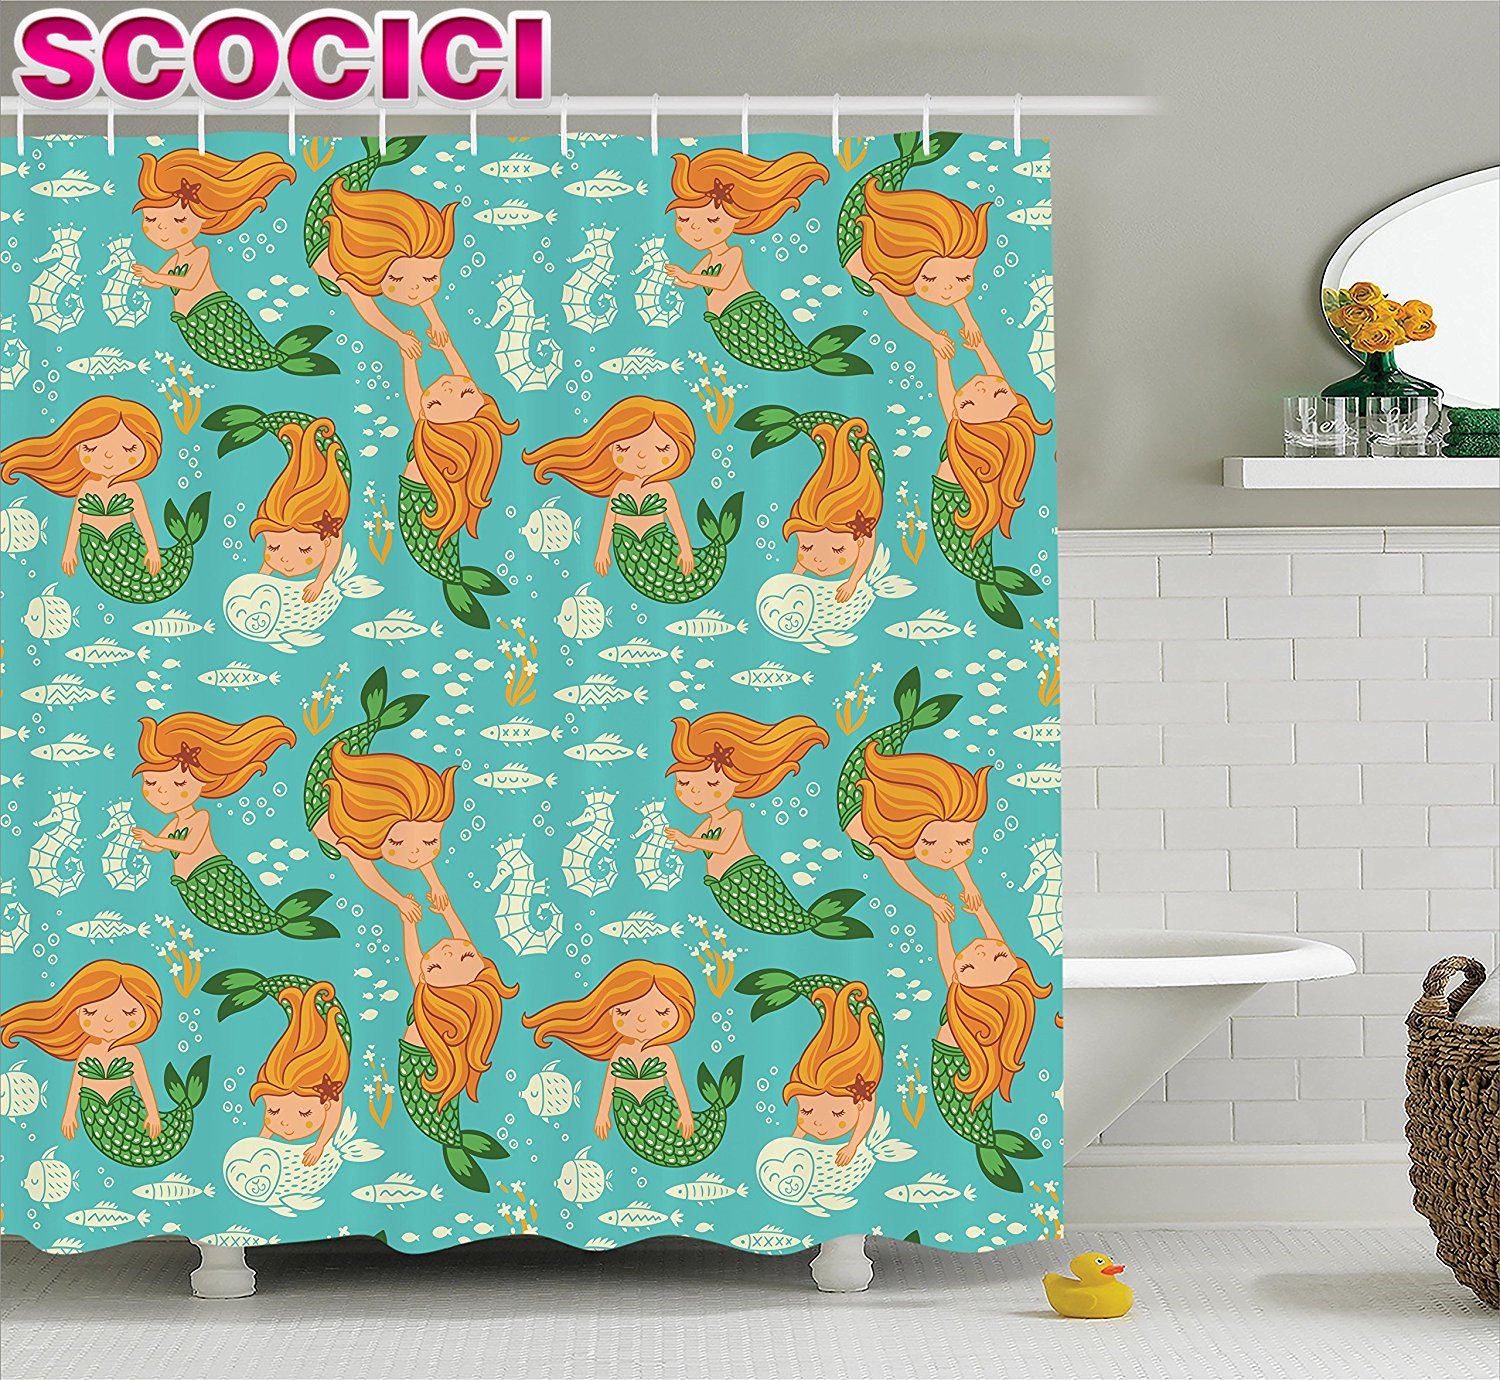 Mermaid bathroom decor - Mermaid Decor Shower Curtain Set Underwater Cartoon World Little Mermaid Girls Friends Seahorse Fish Shells Bathroom